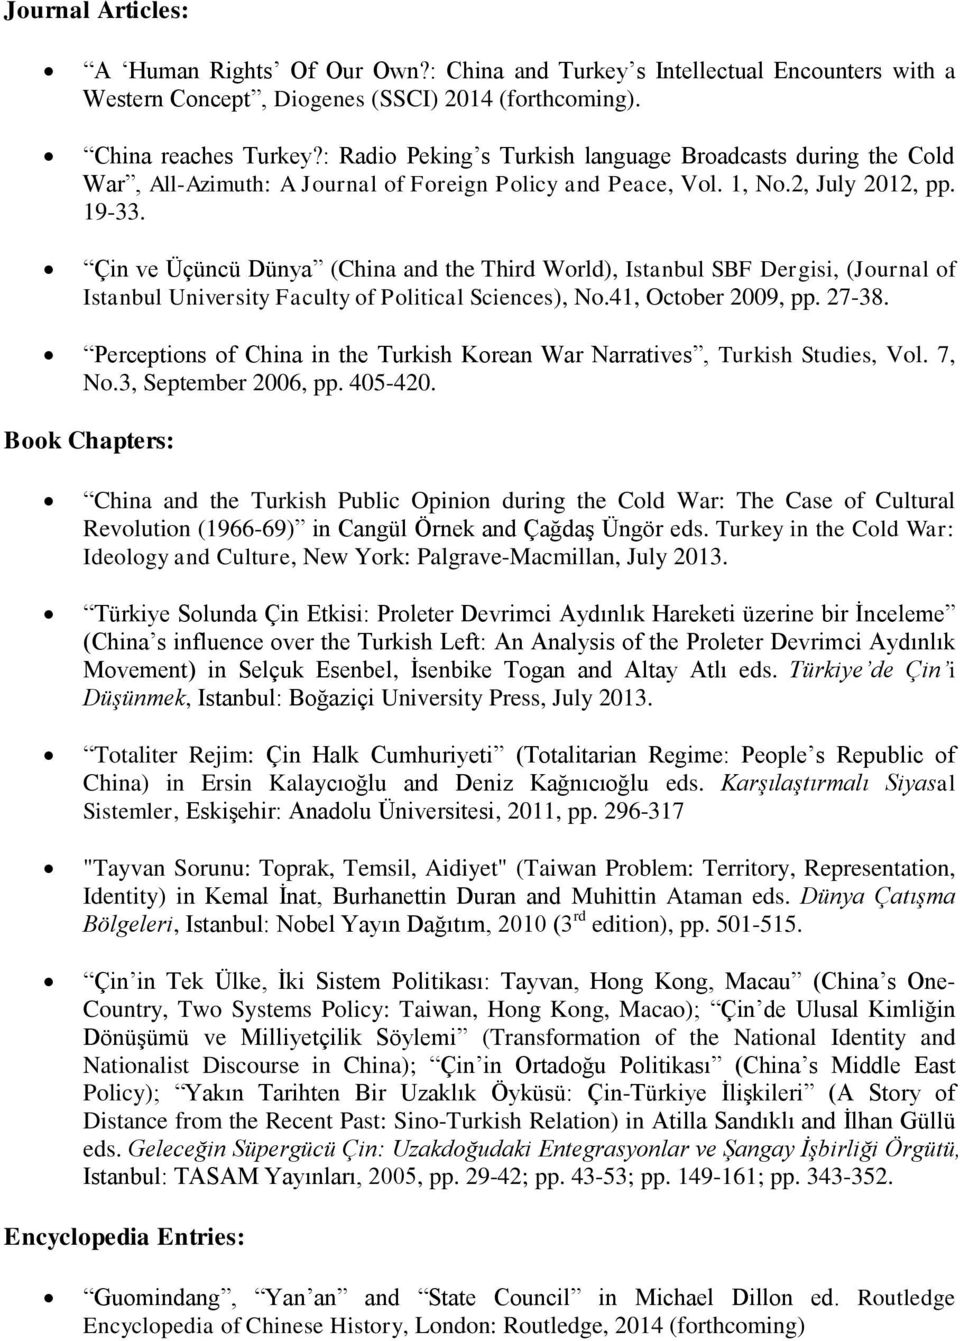 Çin ve Üçüncü Dünya (China and the Third World), Istanbul SBF Dergisi, (Journal of Istanbul University Faculty of Political Sciences), No.41, October 2009, pp. 27-38.